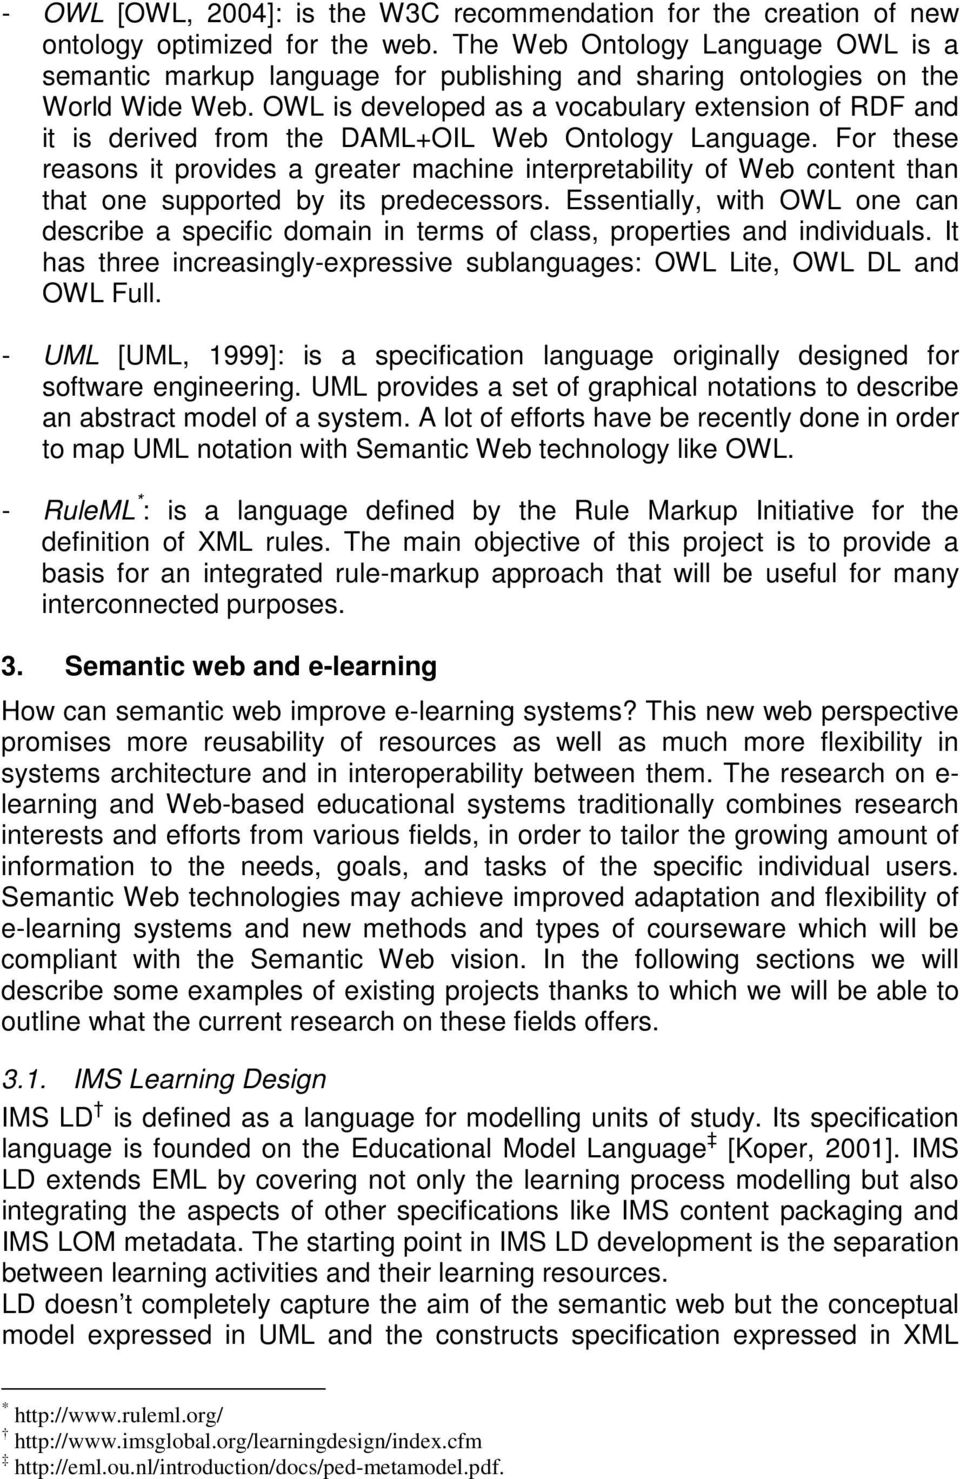 OWL is developed as a vocabulary extension of RDF and it is derived from the DAML+OIL Web Ontology Language.